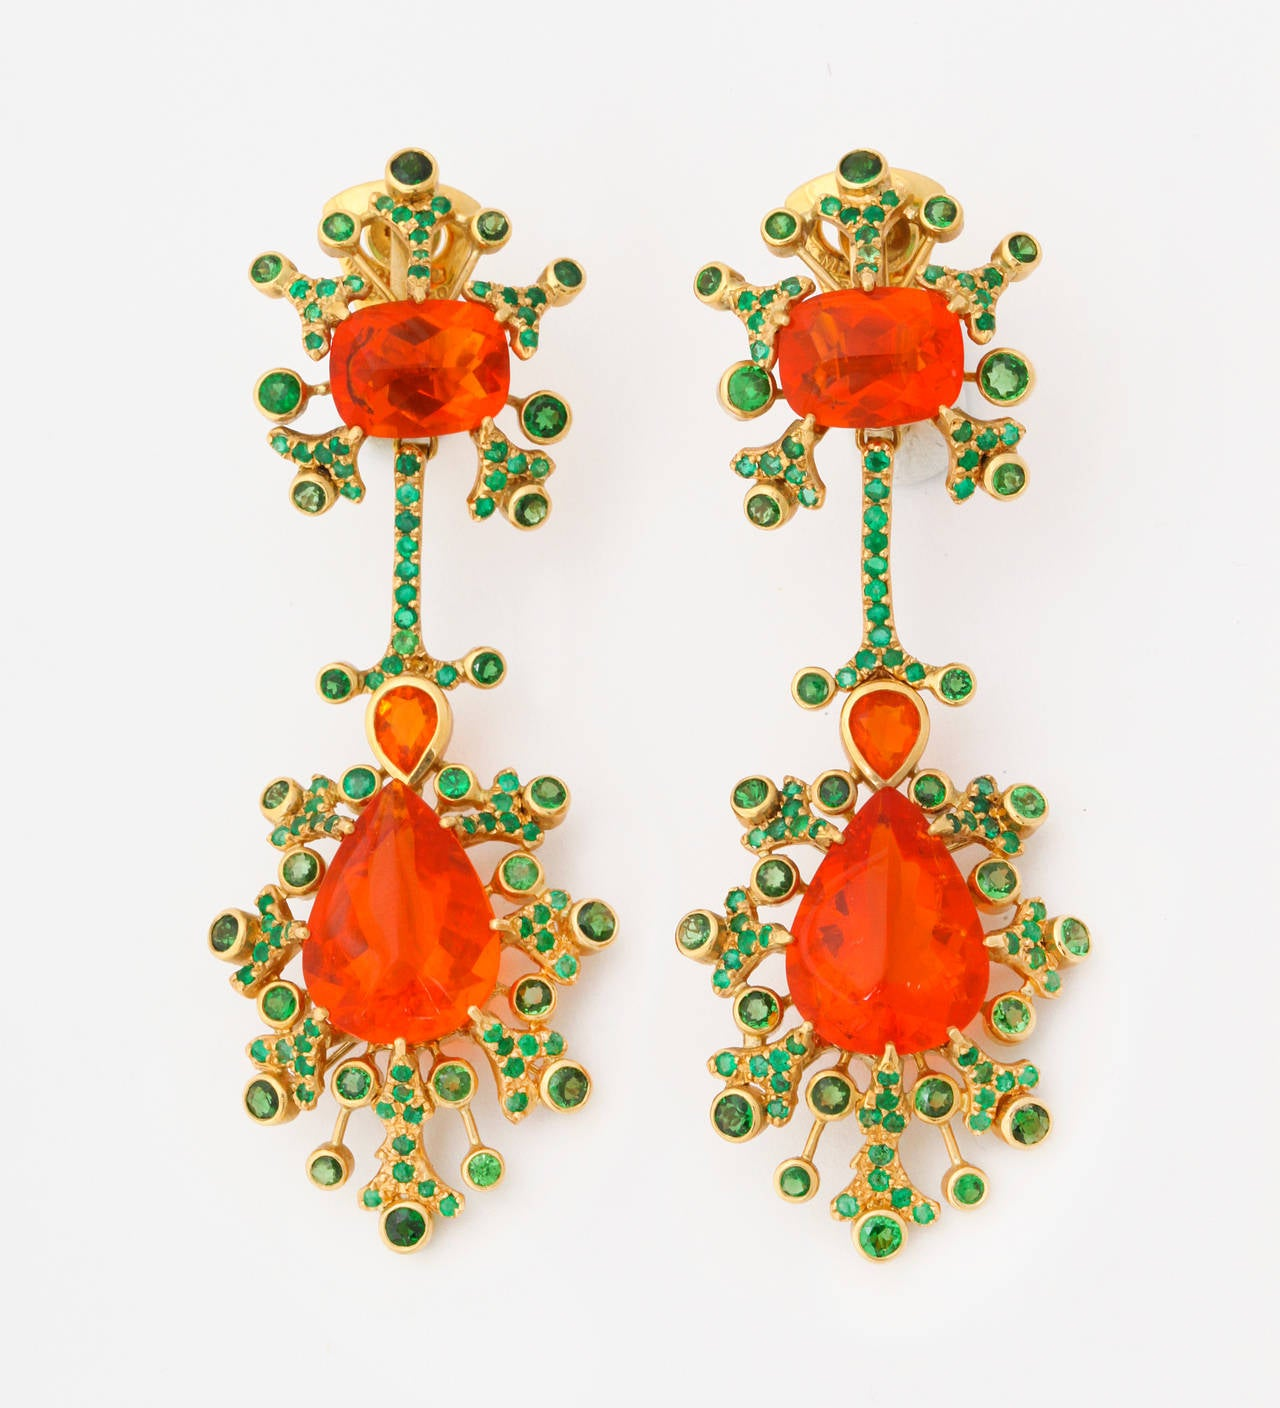 """Marilyn Cooperman """"Hot Pepper Fire Opal"""" earclips set with Mexican fire opals (25.71cts) and tsavorite garnets.  Marilyn Cooperman is an exclusive, New York based designer, who is well known amongst true jewelry connoisseurs.  Formerly the head"""